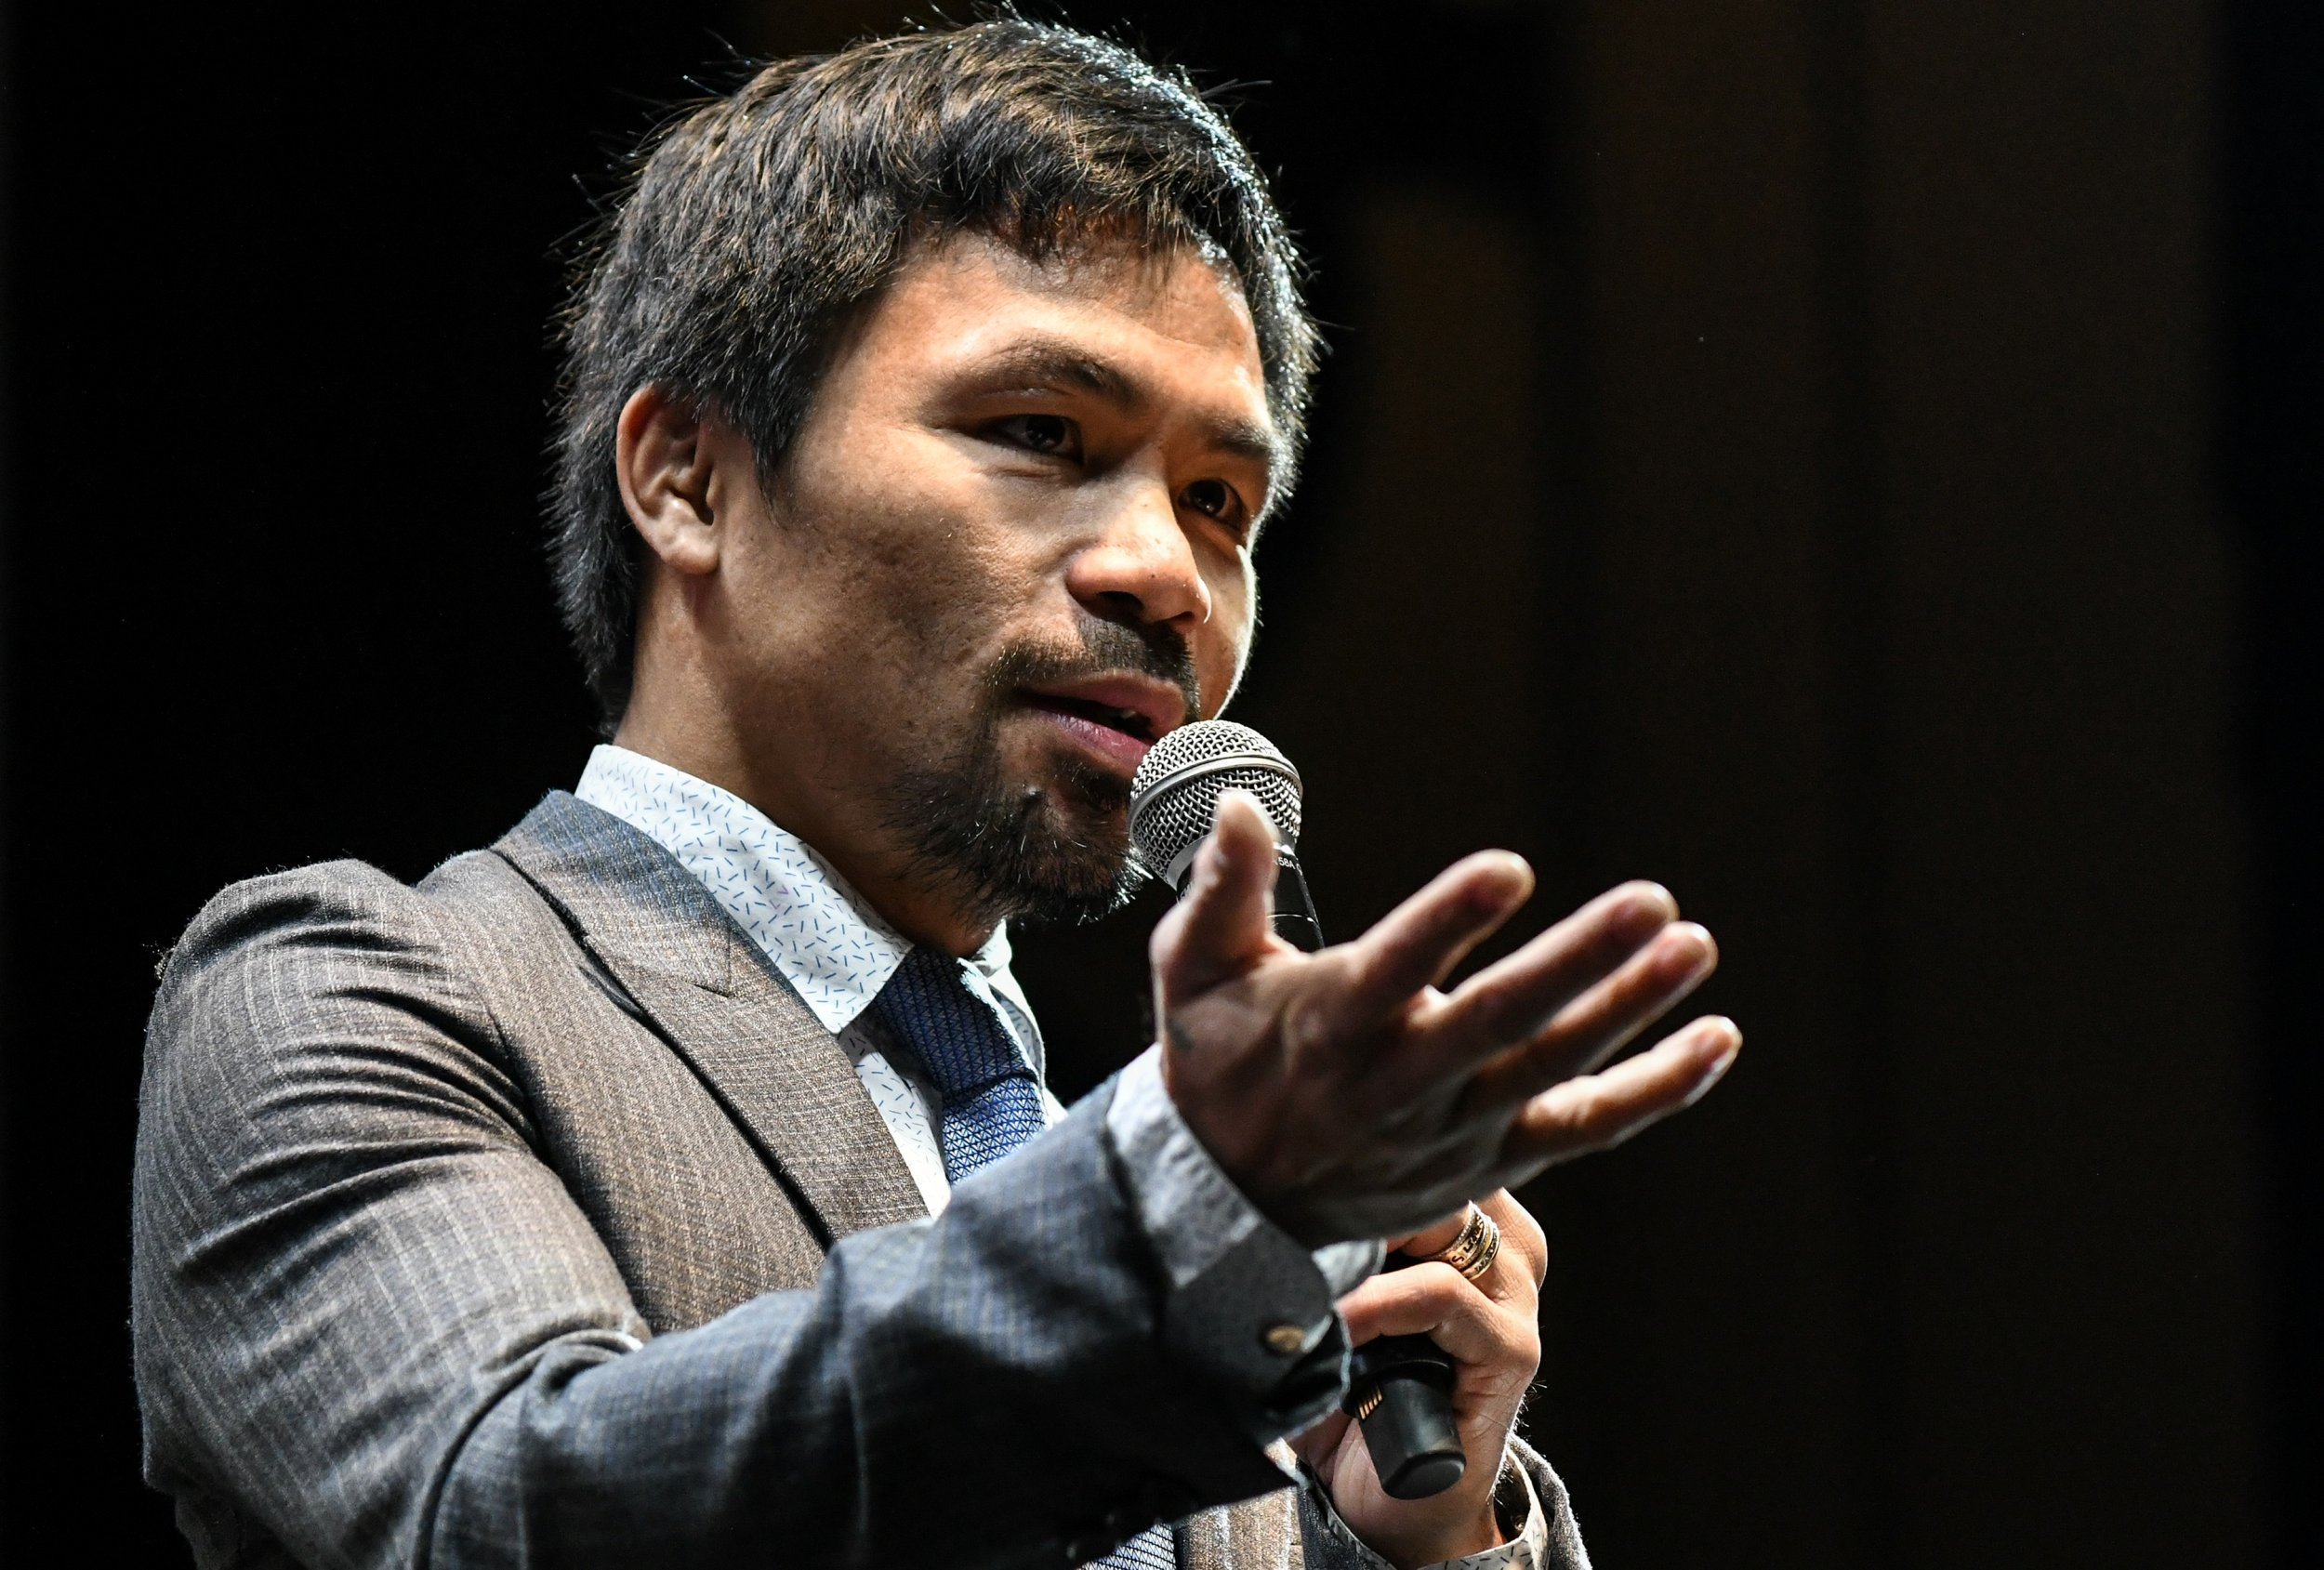 Manny Pacquiao Future Fights after COVID-19